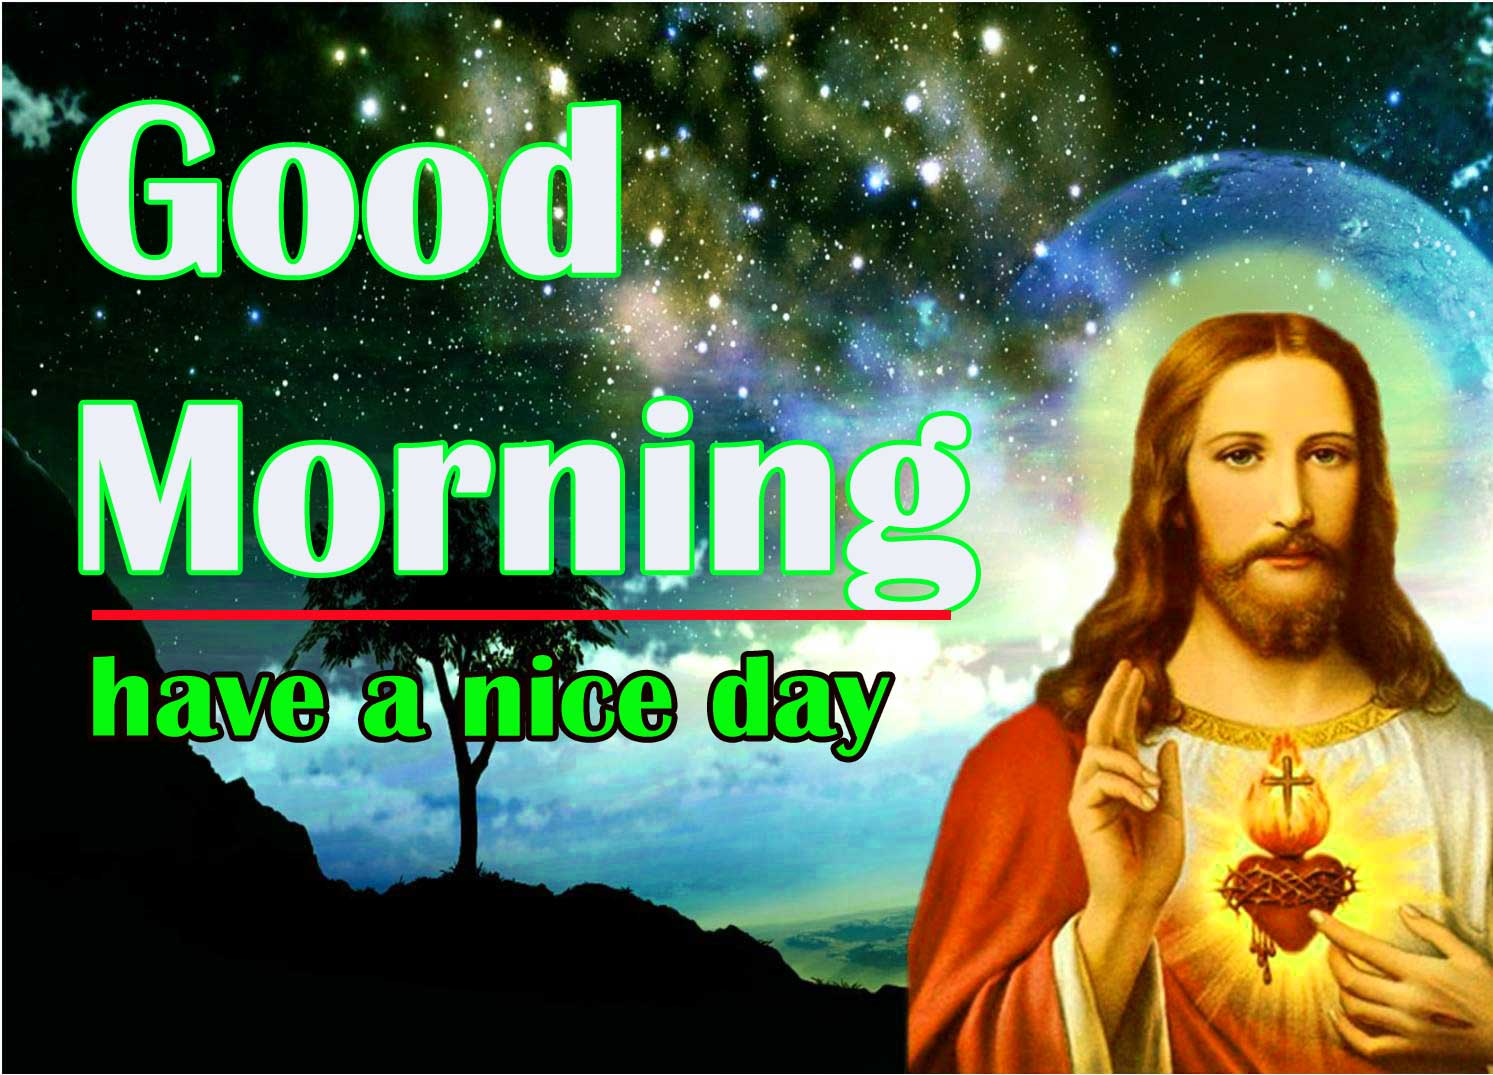 Good-Morning-Lord-Jesus-Images-13